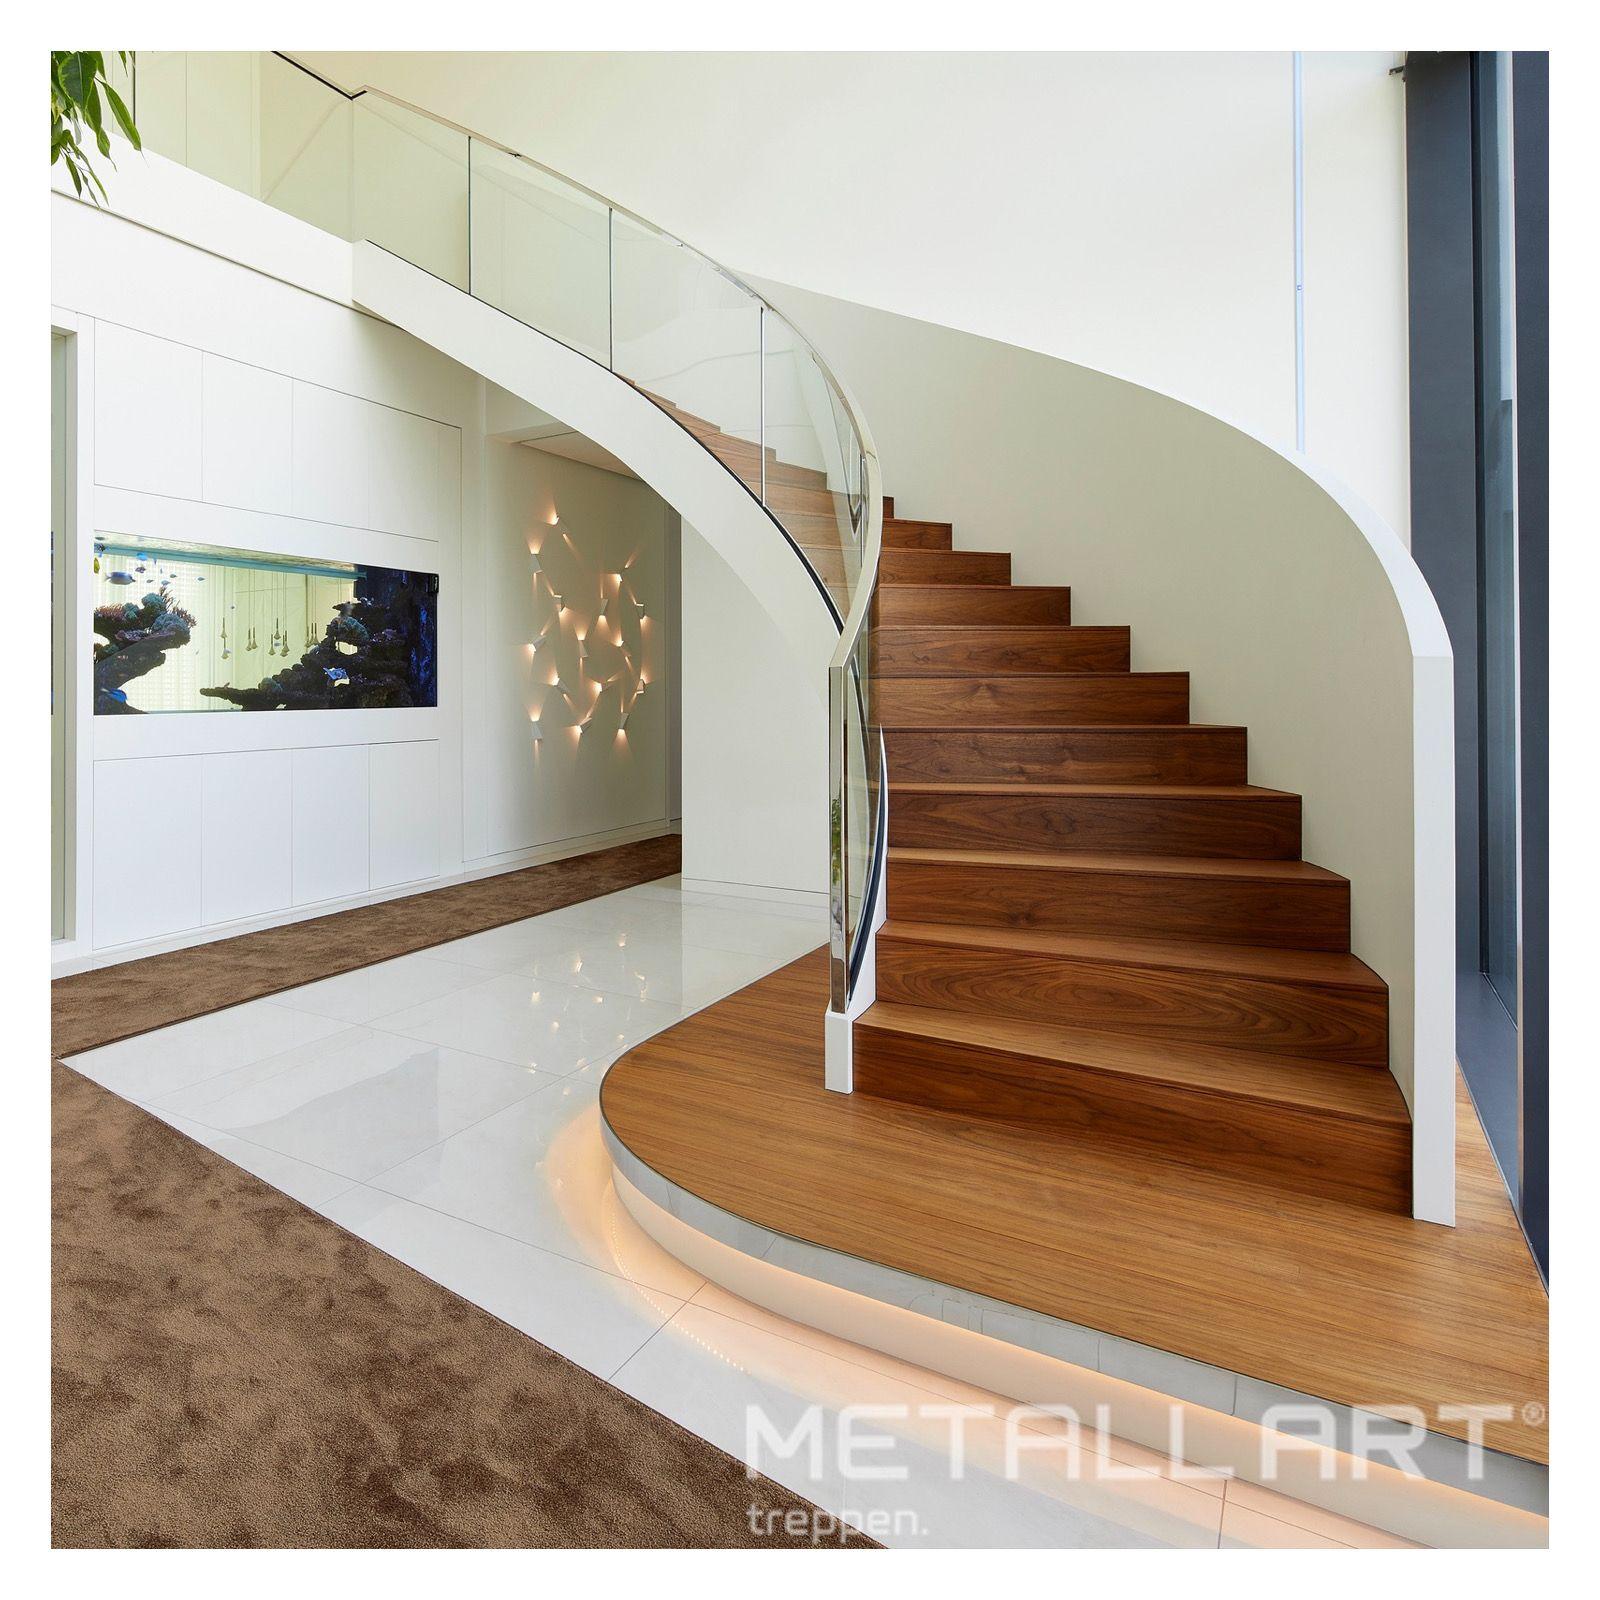 Folded stairs with elegant all-glass railing